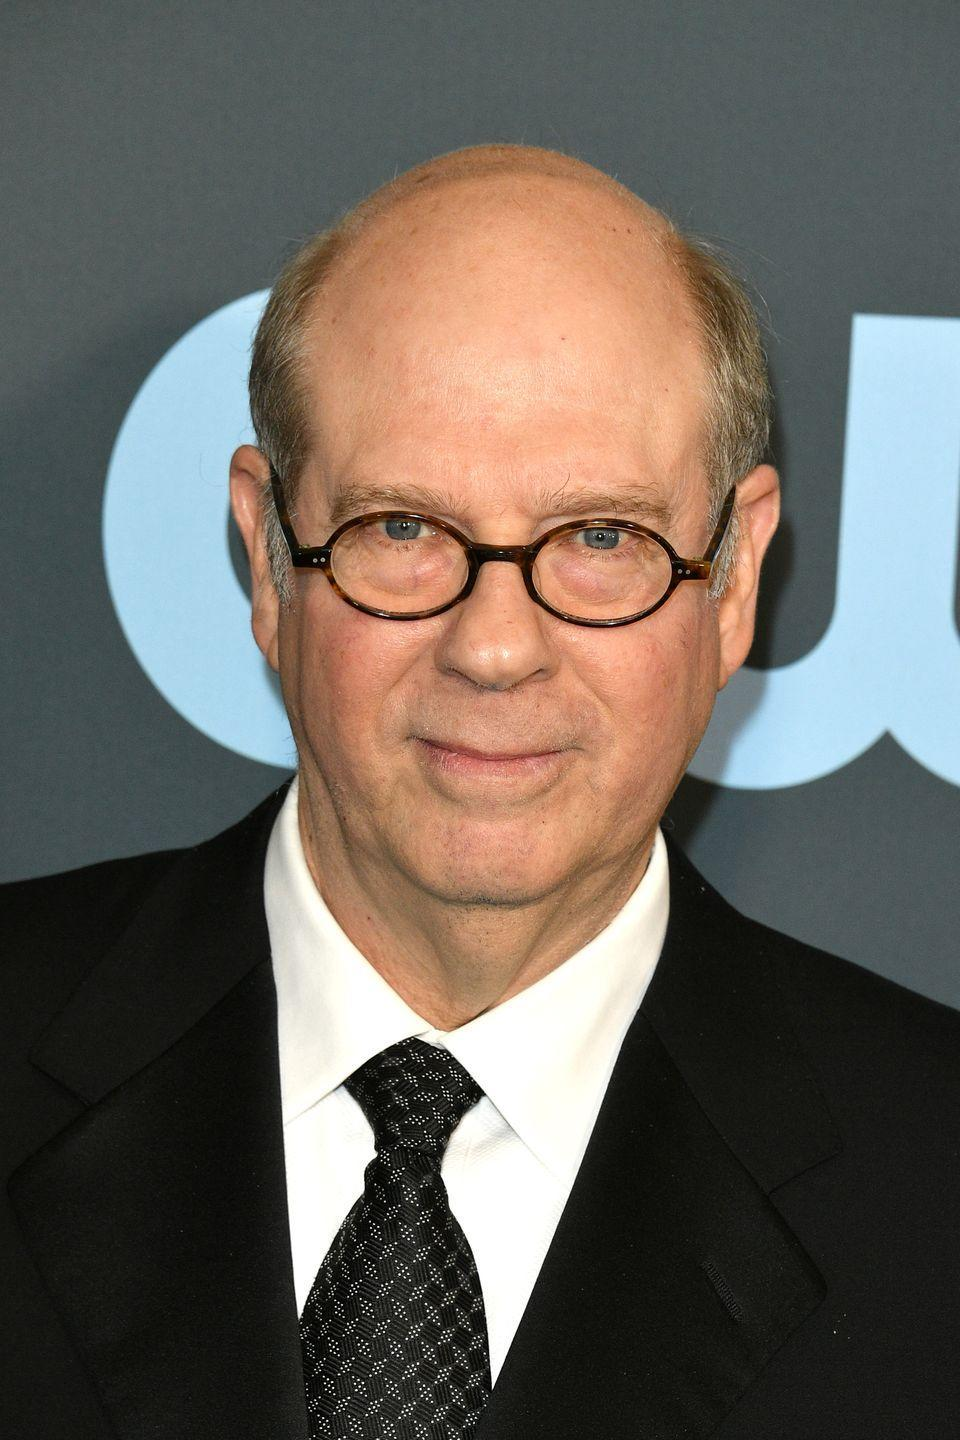 "<p>Other places you'll see Tobolowsky include <em>Memento, Freaky Friday, <a href=""https://www.amazon.com/Miss-Congeniality-2-Armed-Fabulous/dp/B00A6VYZPY?tag=syn-yahoo-20&ascsubtag=%5Bartid%7C2164.g.35217692%5Bsrc%7Cyahoo-us"" rel=""nofollow noopener"" target=""_blank"" data-ylk=""slk:Miss Congeniality 2"" class=""link rapid-noclick-resp"">Miss Congeniality 2</a>, Failure to Launch, The Time Traveller's Wife</em> as well as episodes of<em> The Mindy Project, The Goldbergs, Justified, Californication</em>, and<em> <a href=""https://www.amazon.com/Pilot/dp/B002C2R8TK?tag=syn-yahoo-20&ascsubtag=%5Bartid%7C2164.g.35217692%5Bsrc%7Cyahoo-us"" rel=""nofollow noopener"" target=""_blank"" data-ylk=""slk:The New Adventures of Old Christine"" class=""link rapid-noclick-resp"">The New Adventures of Old Christine</a></em>. No wonder he looks so familiar! </p>"